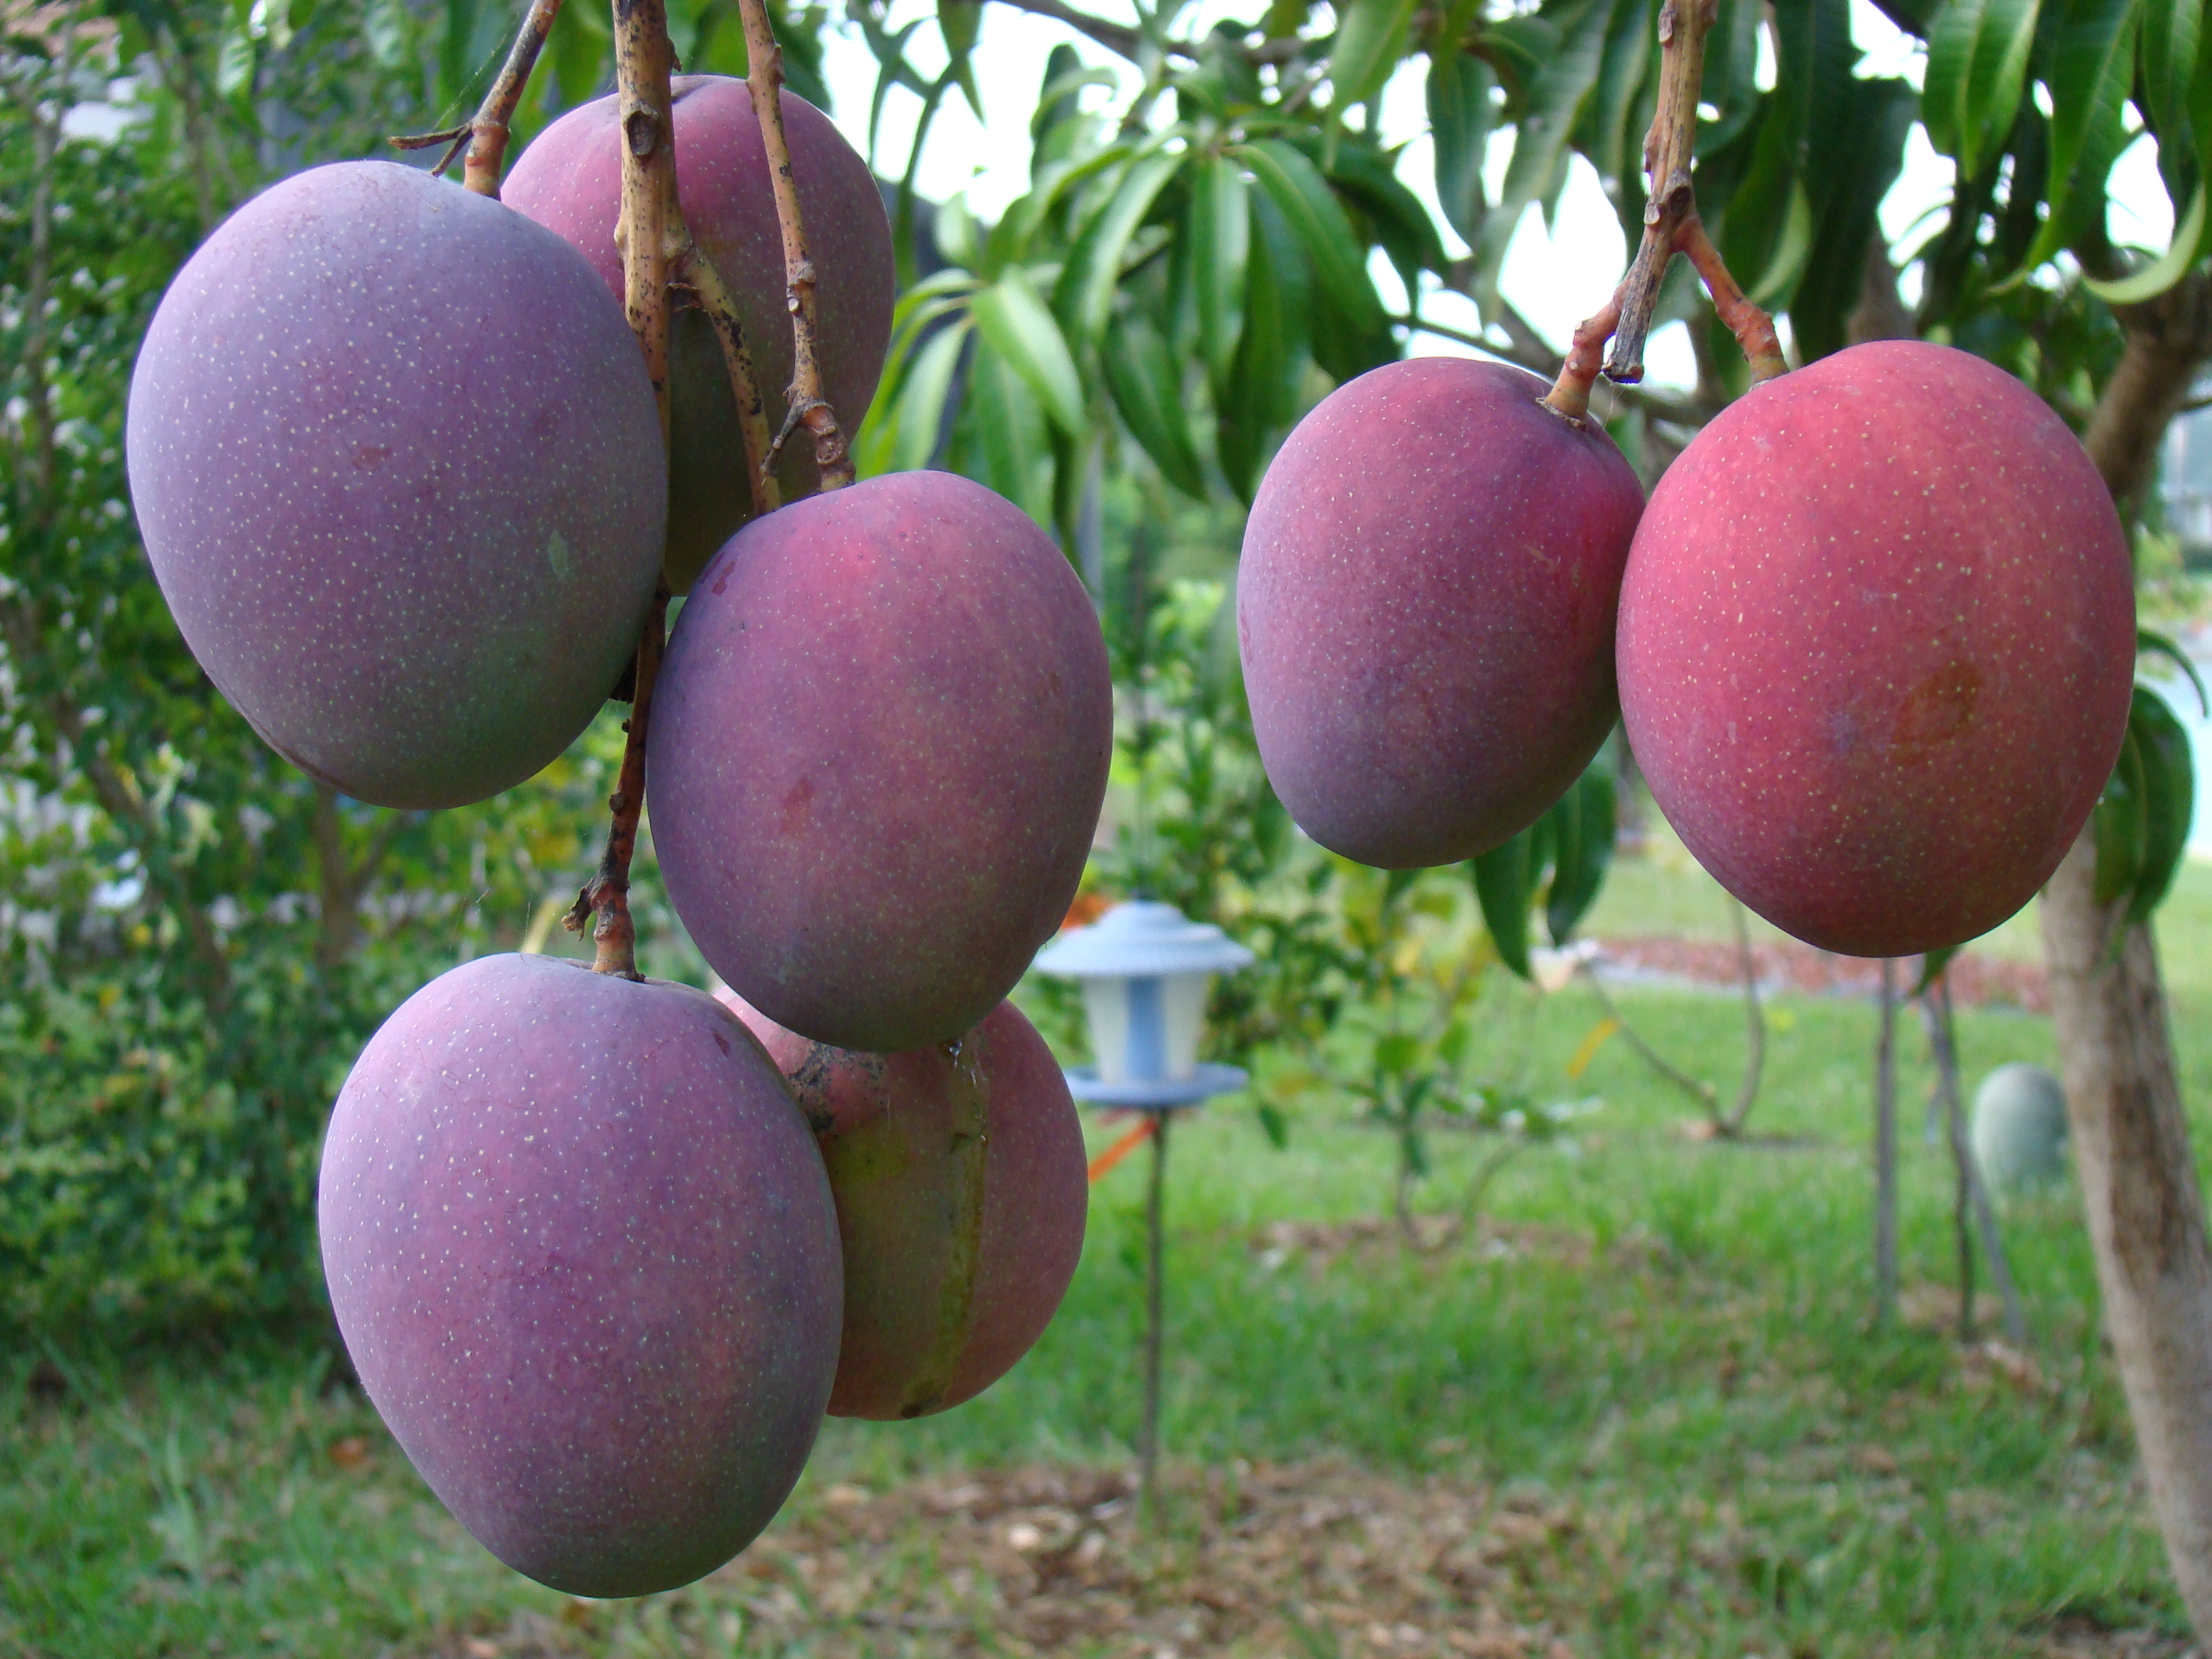 Mangoes on a tree